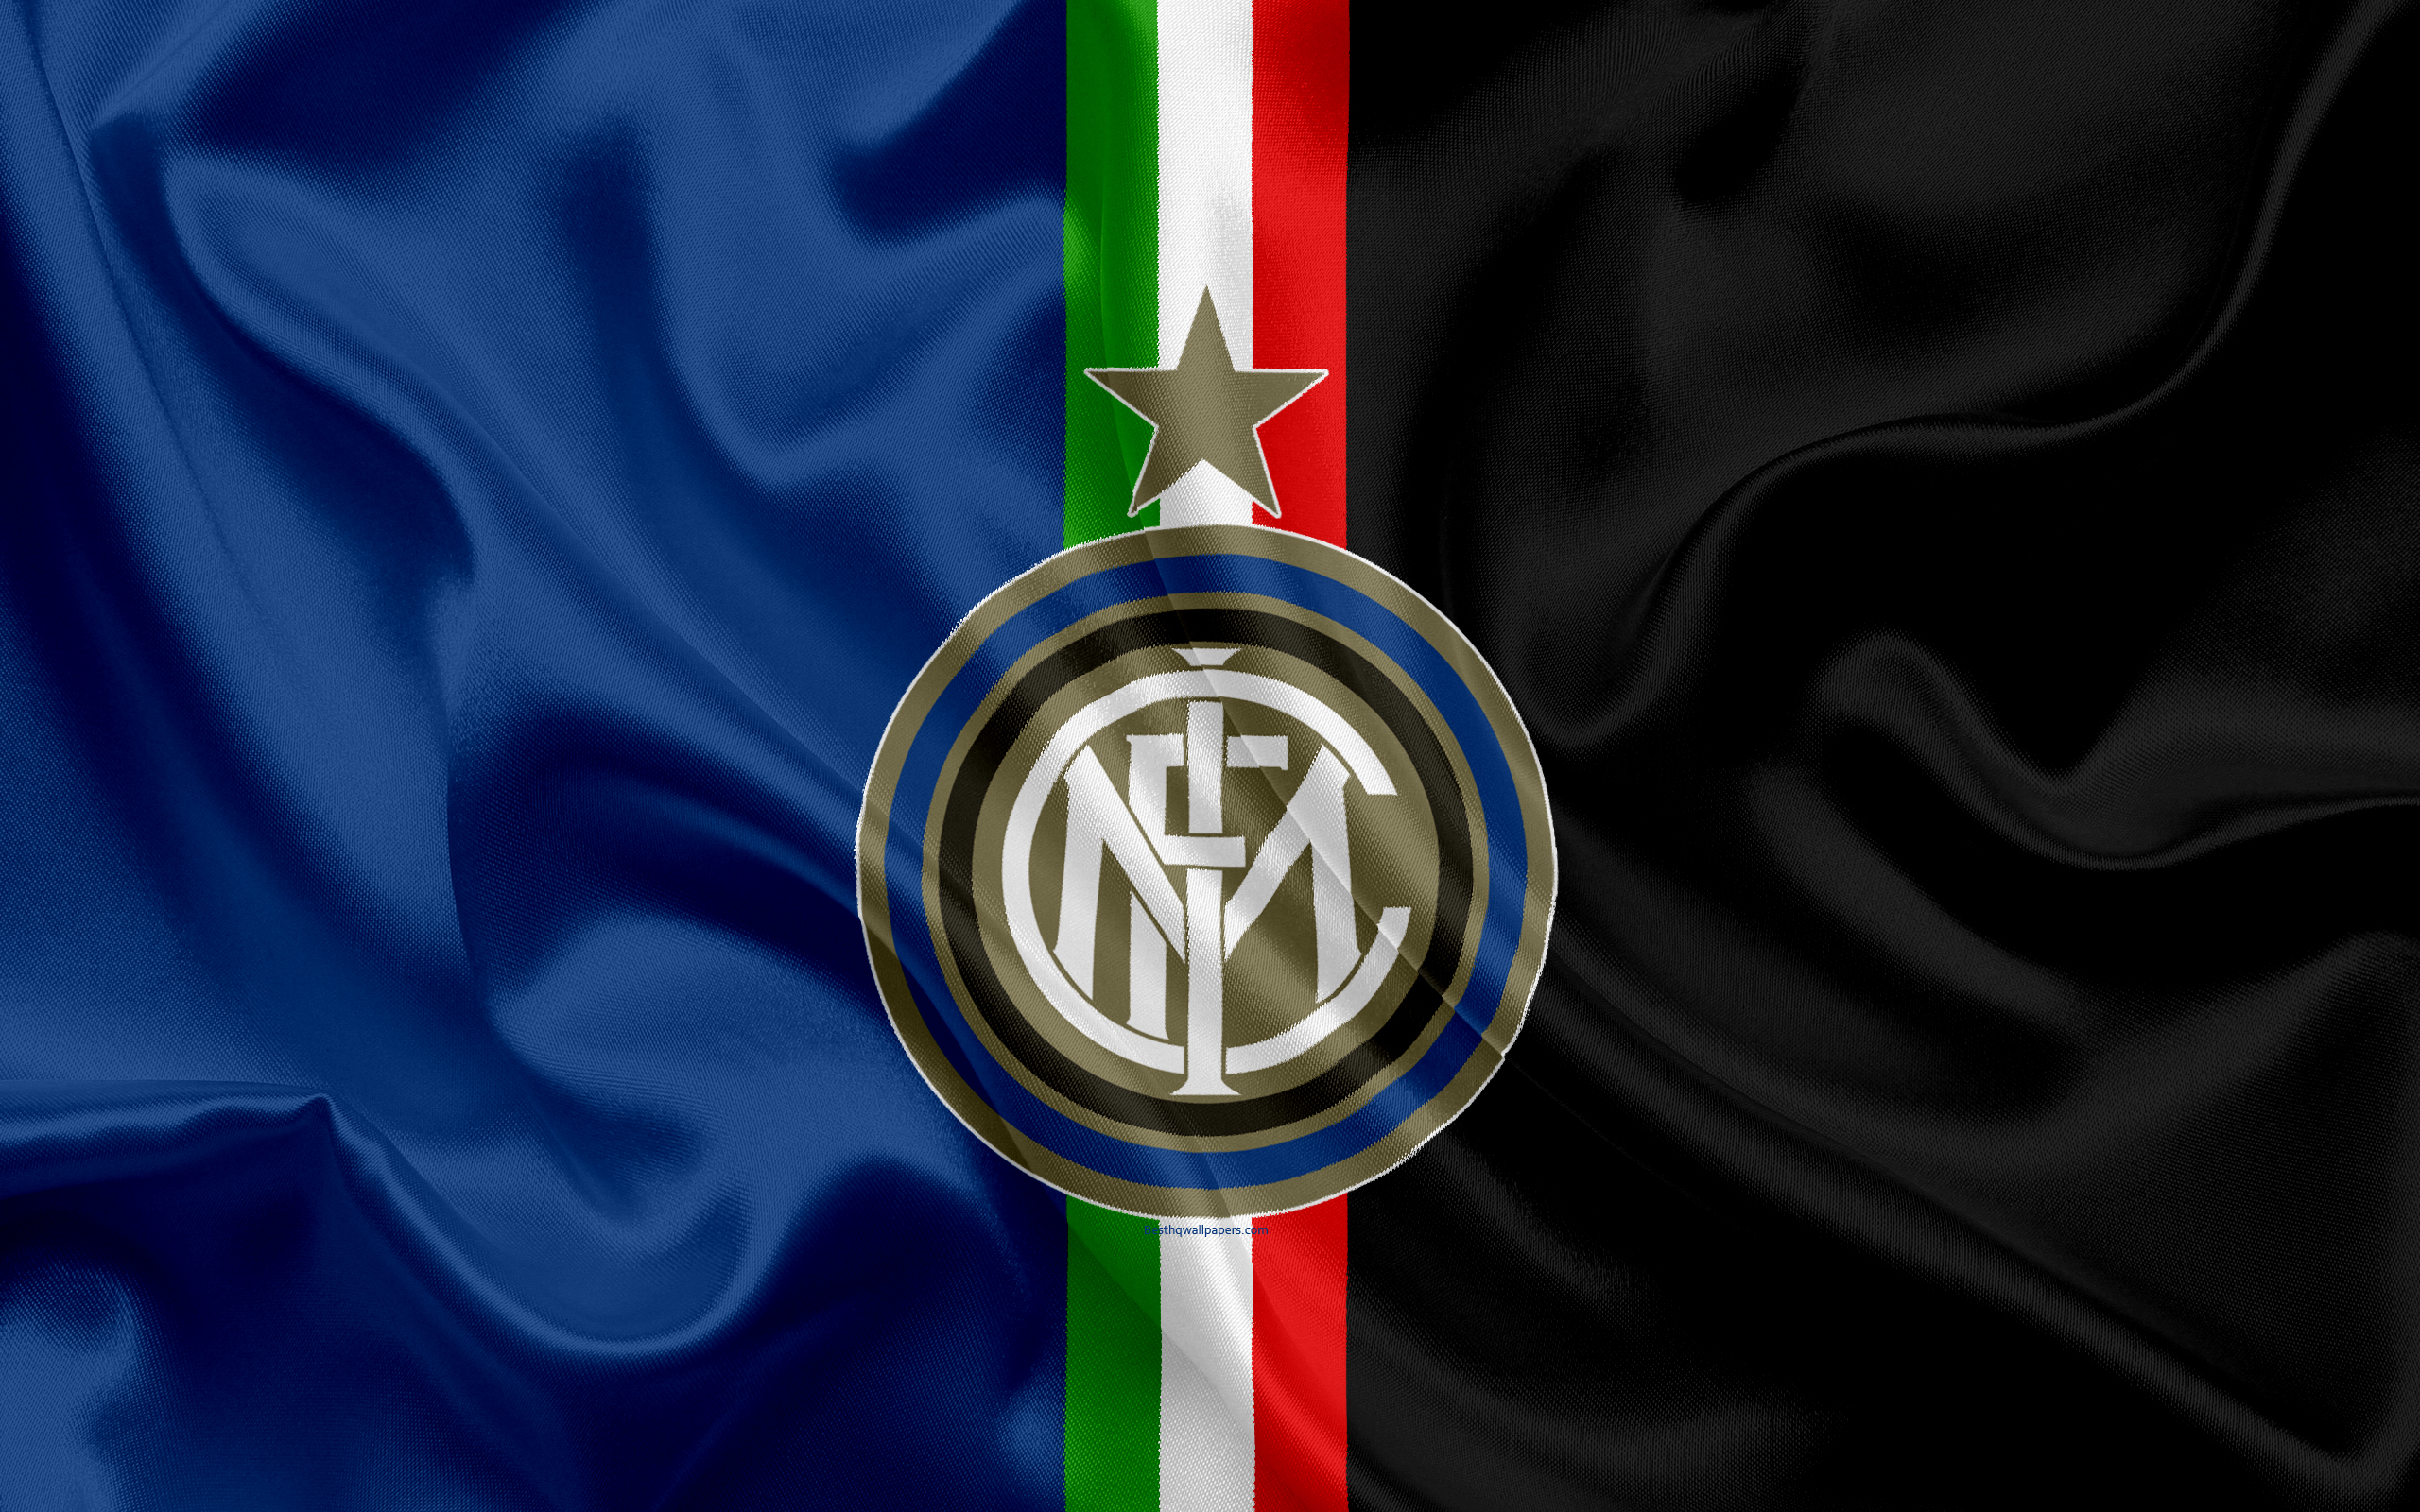 Inter Milan Football Serie A Italy Emblem Of Internazionale Desktop Hd Inter Milan 2560x1600 Wallpaper Teahub Io